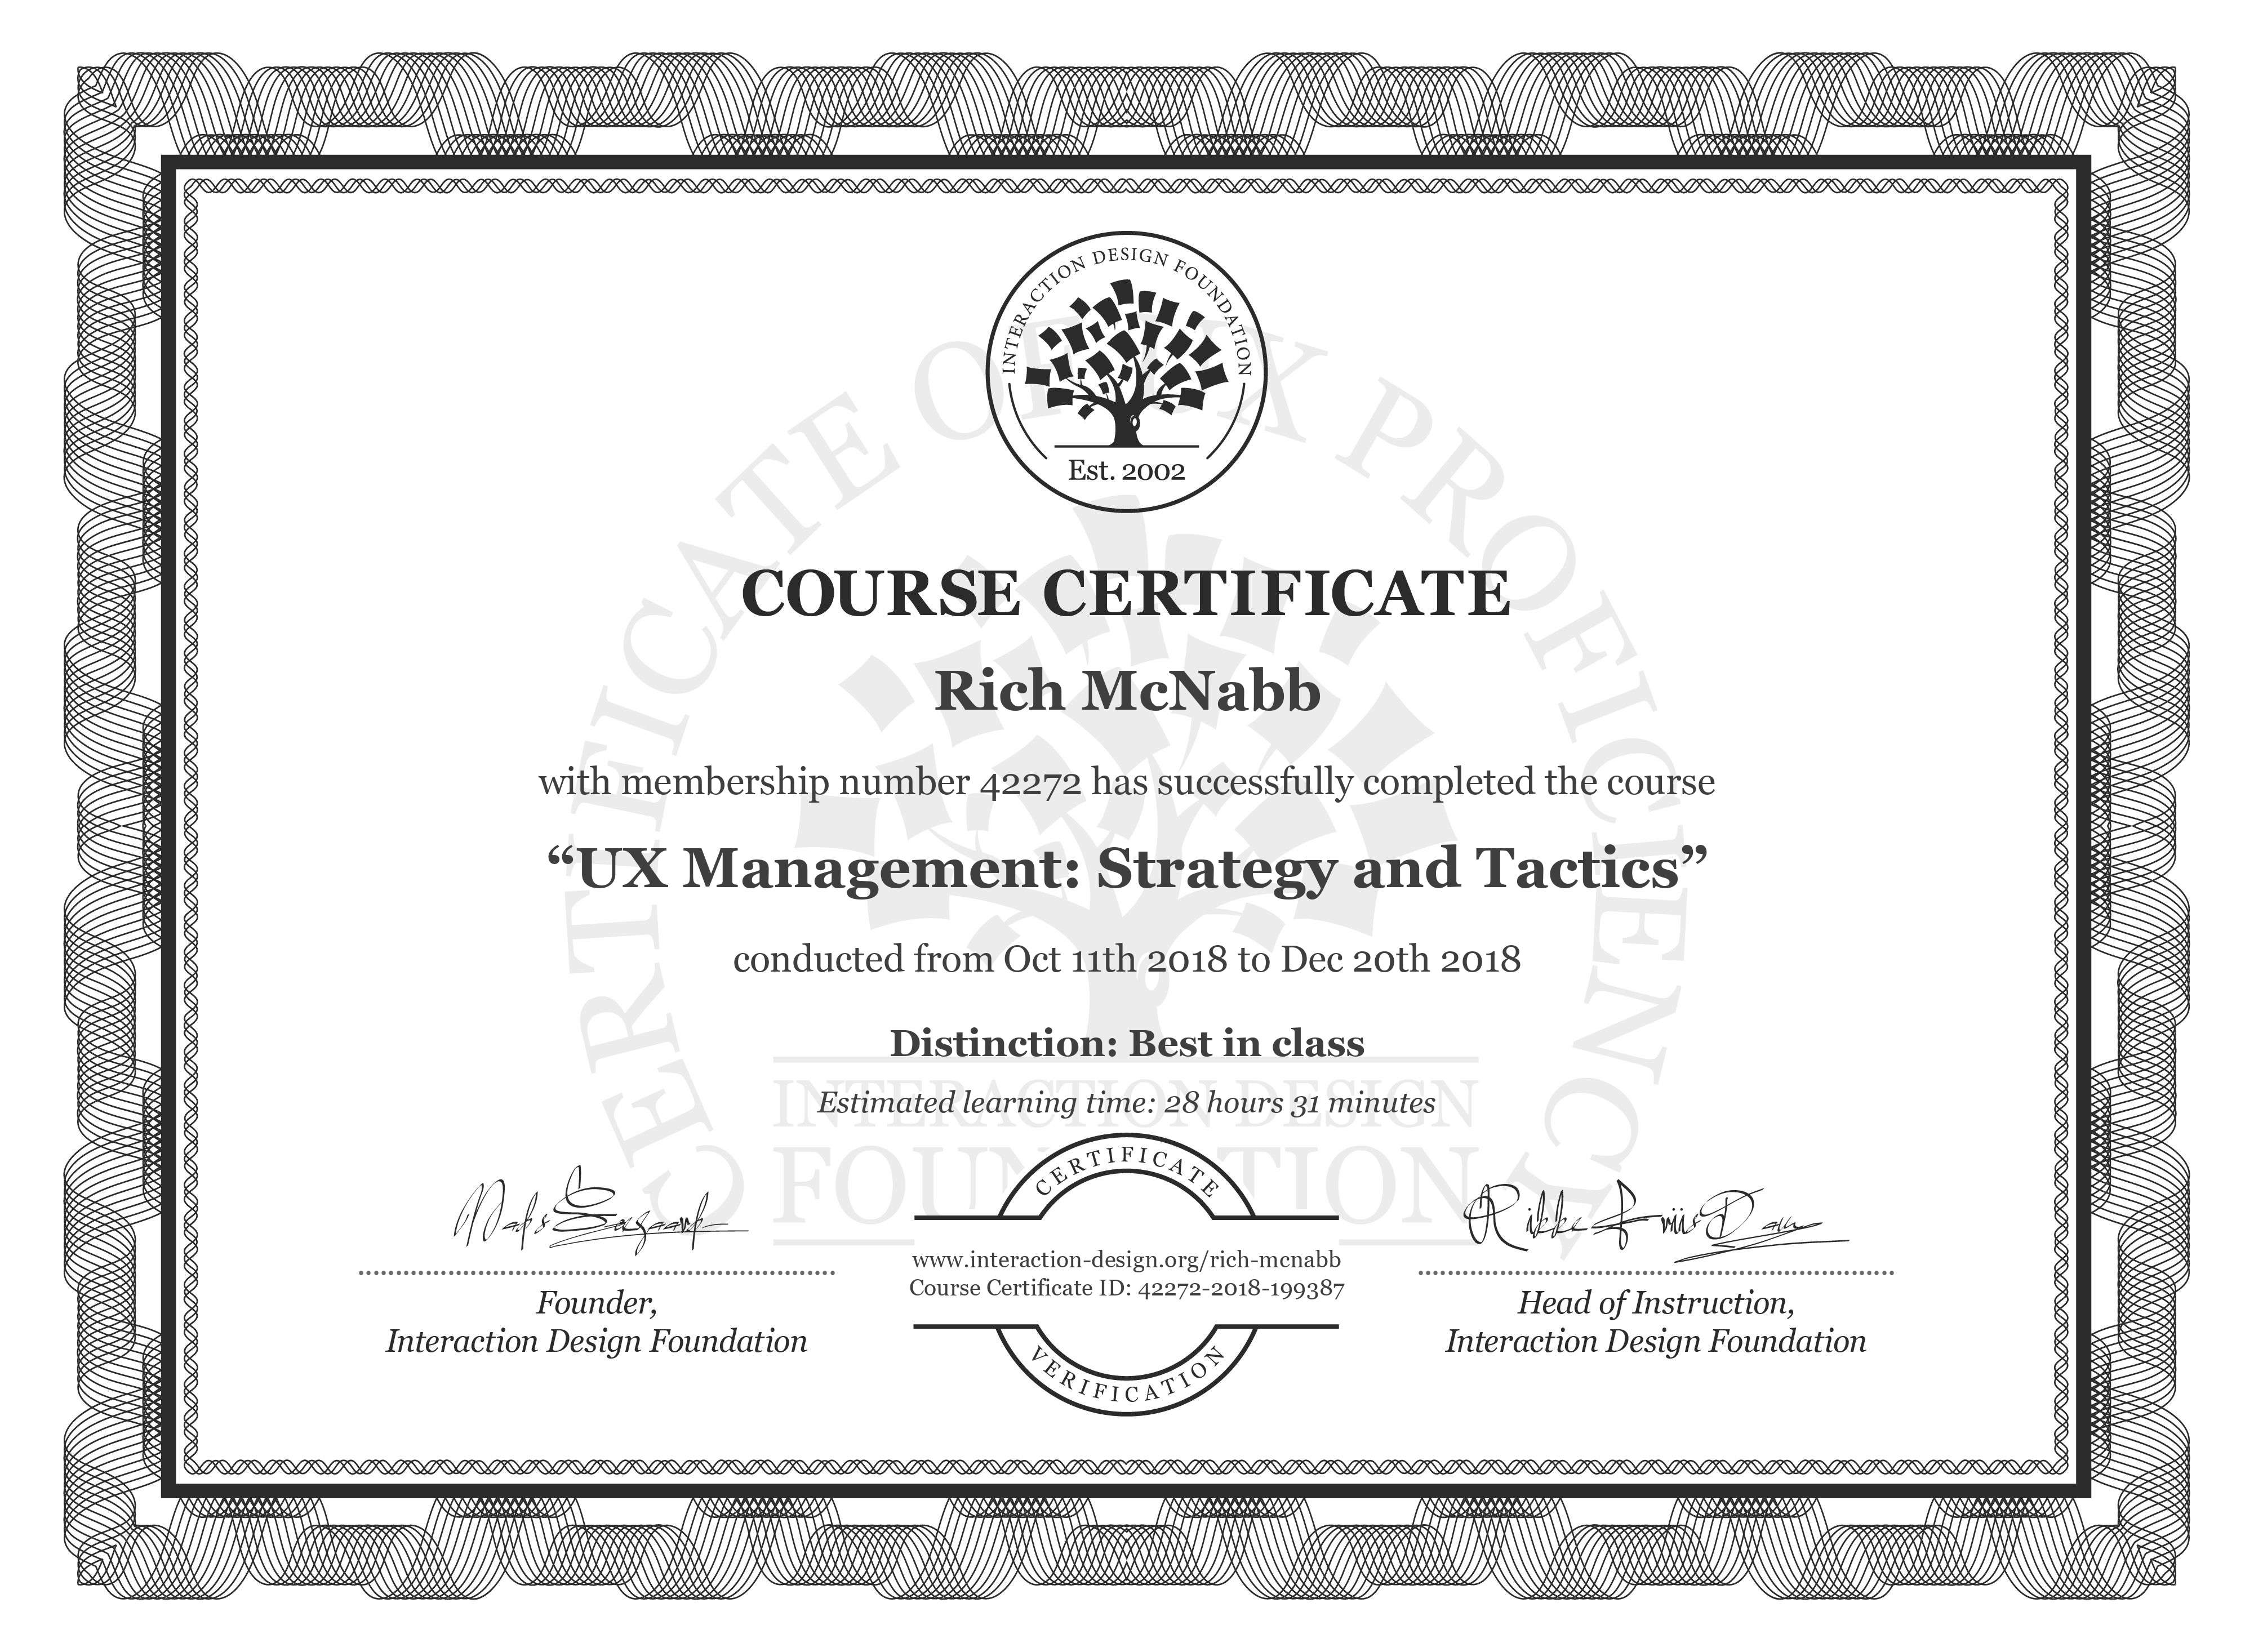 Rich McNabb's Course Certificate: UX Management: Strategy and Tactics